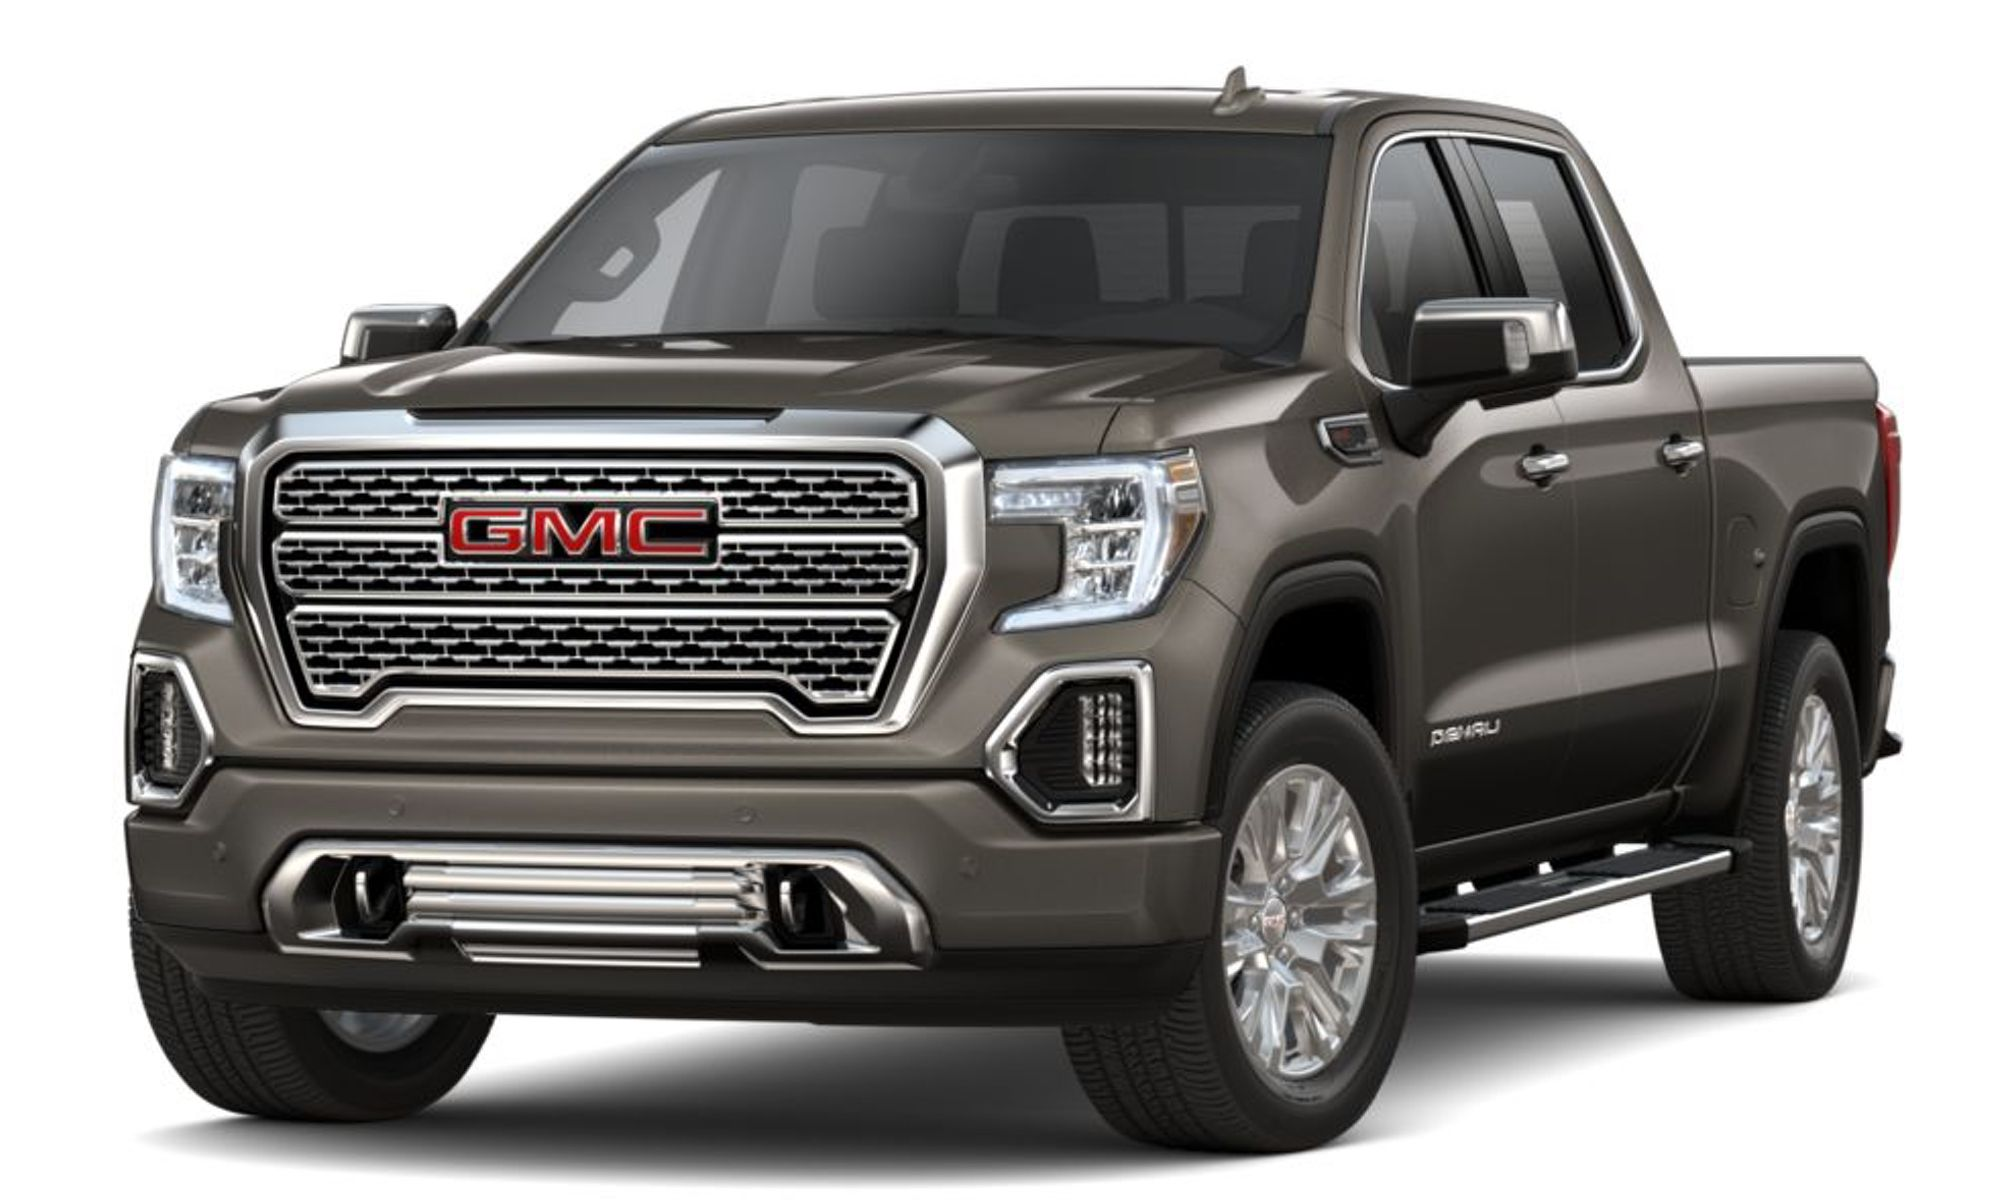 Review 2019 Gmc Sierra 1500 Denali Exterior Colors And Images Feels Free To Follow Us Di 2020 Dengan Gambar Kendaraan